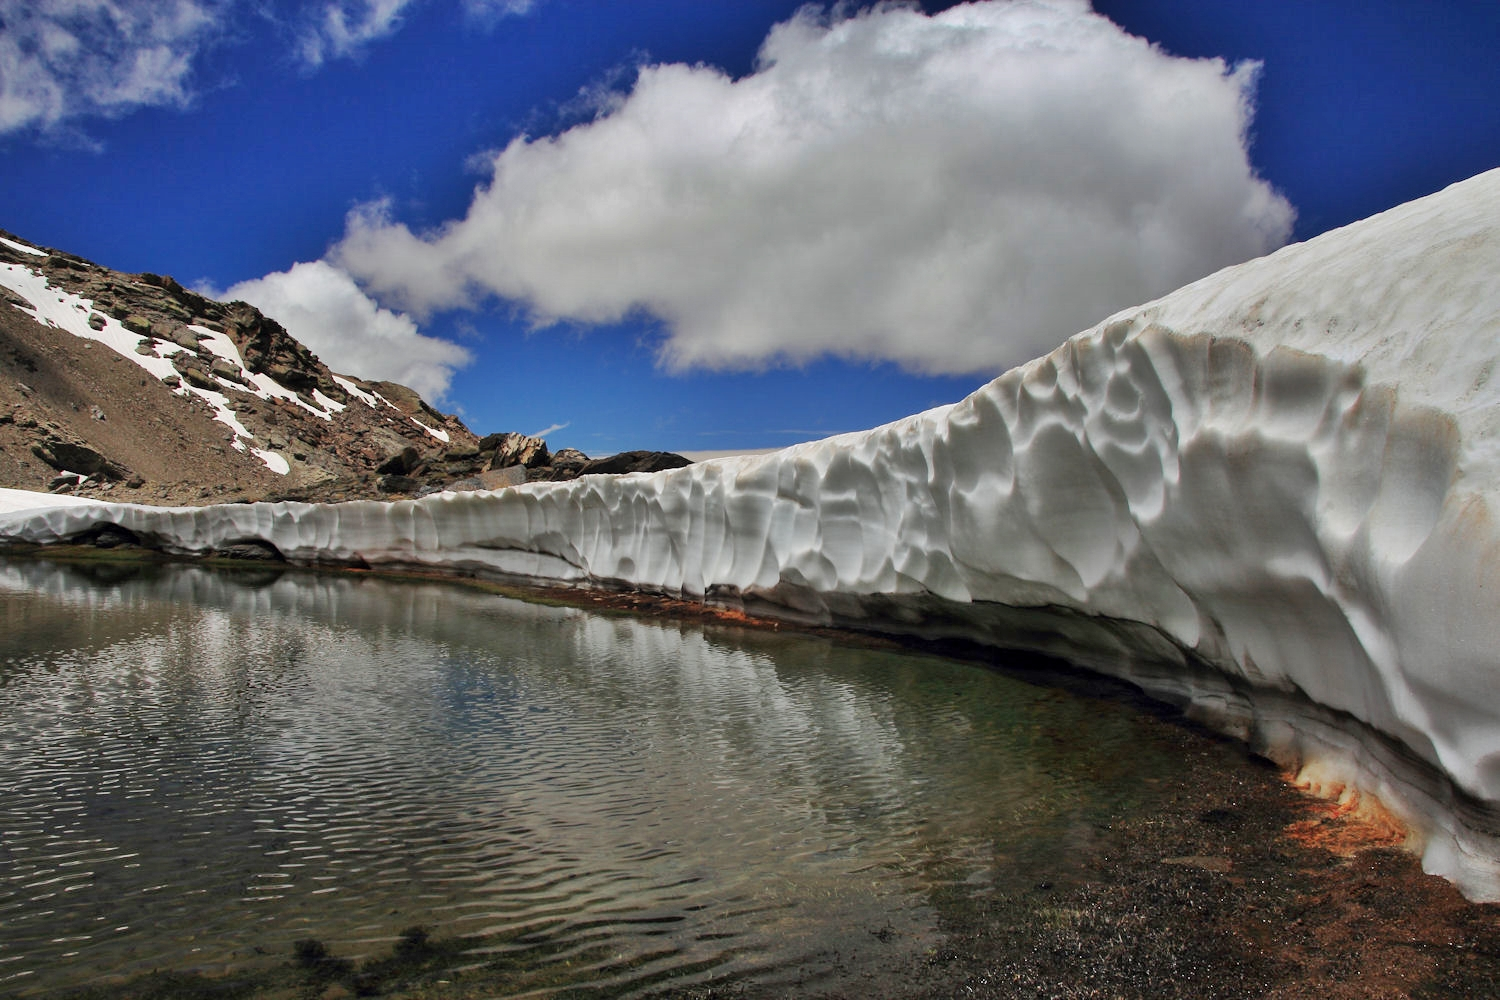 """The Snow Wall"" - PN Sierra Nevada - DF09698"